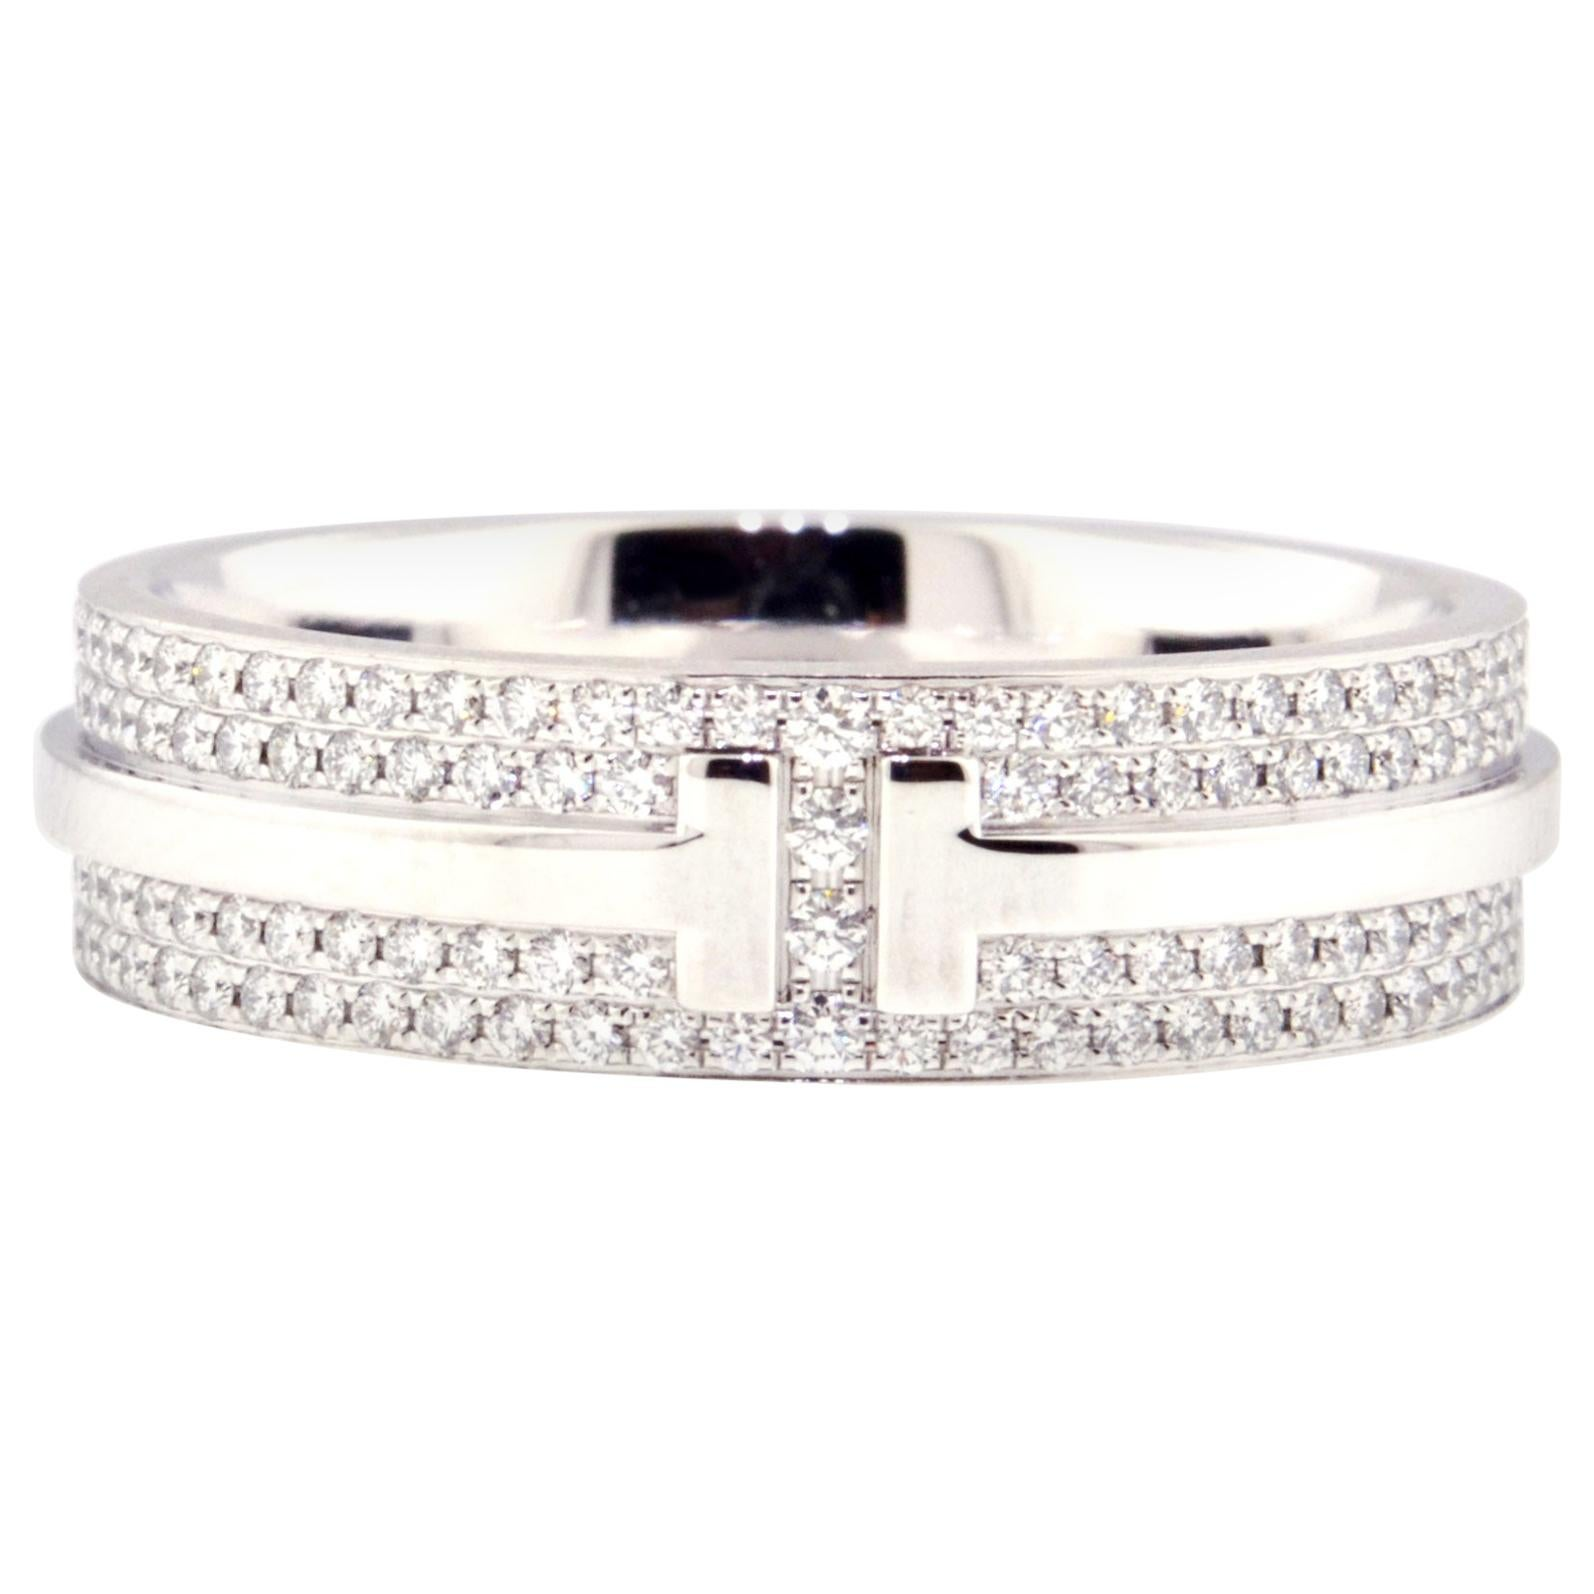 Tiffany & Co. Tiffany T Wide Pave Diamond Band Ring in 18 Karat White Gold